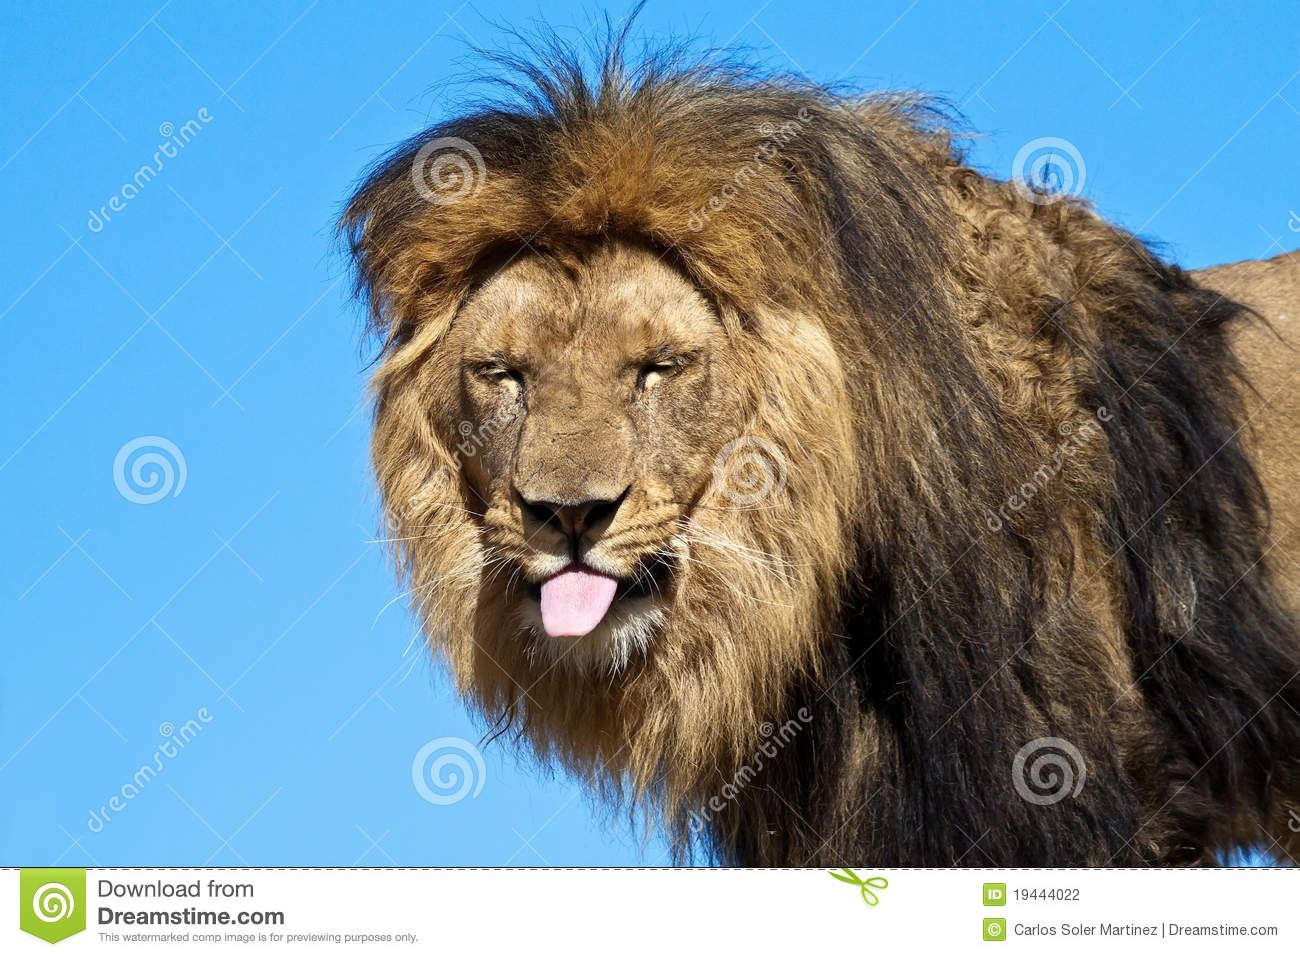 Lion Sticking Out His Tongue Teasing Stock Photo